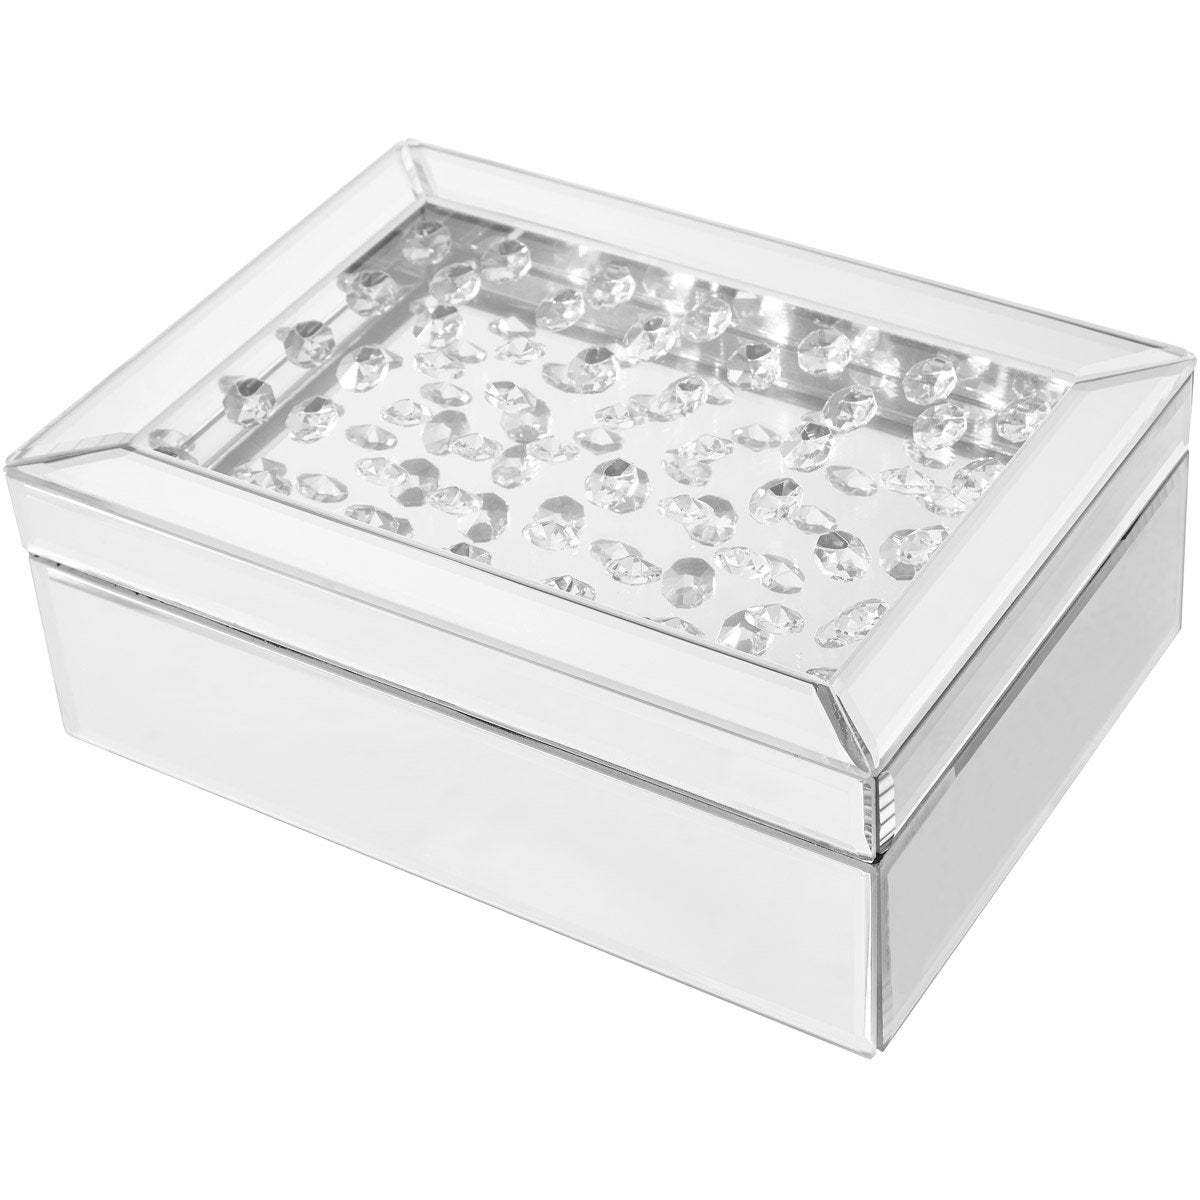 Sparkle 10 X 4 Jewelry Box (Mr9119) Jewelry Box